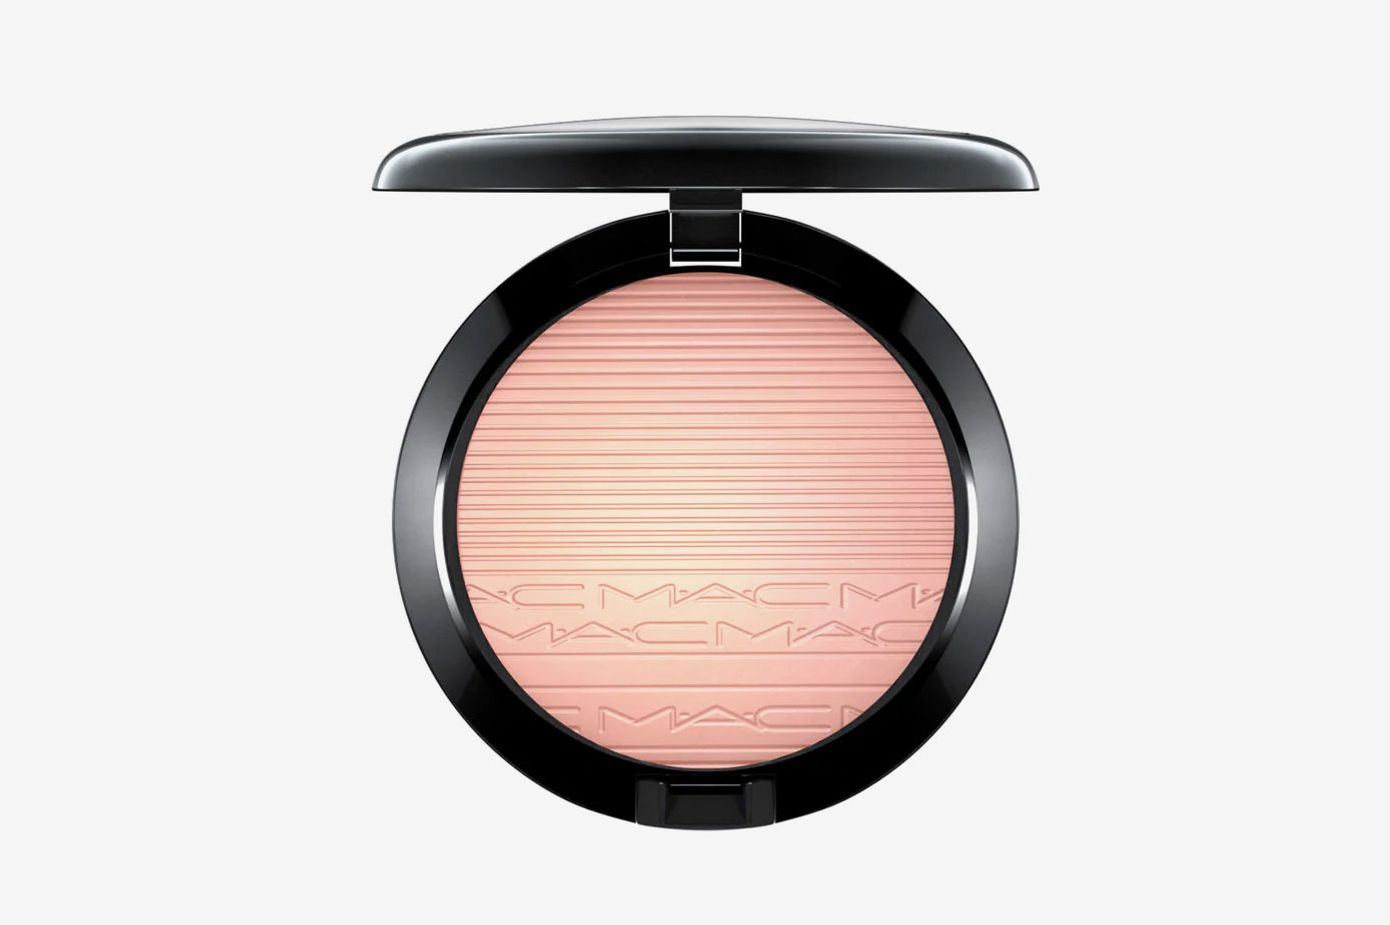 M.A.C Extra Dimension Skinfinish